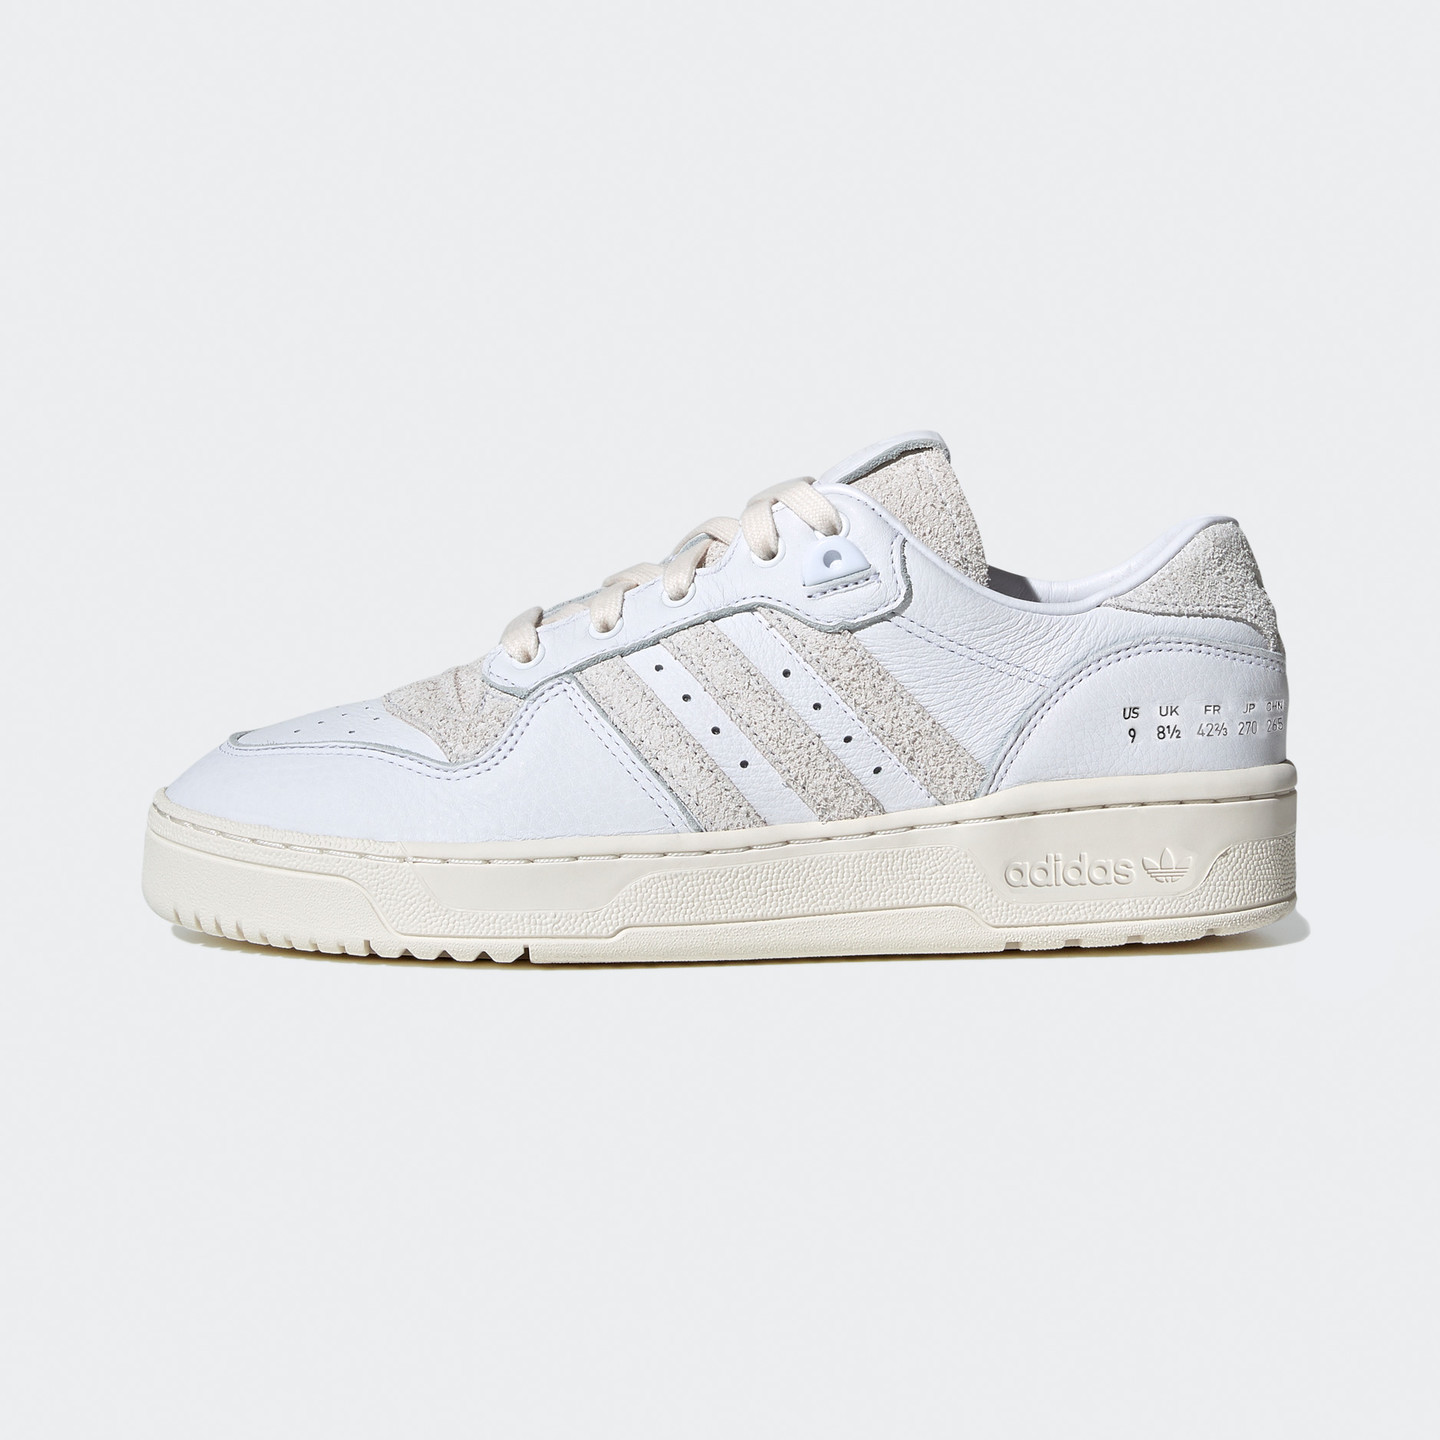 Adidas Rivalry Low Premium Leather Cloud White / Crystal White / Off White FY0035